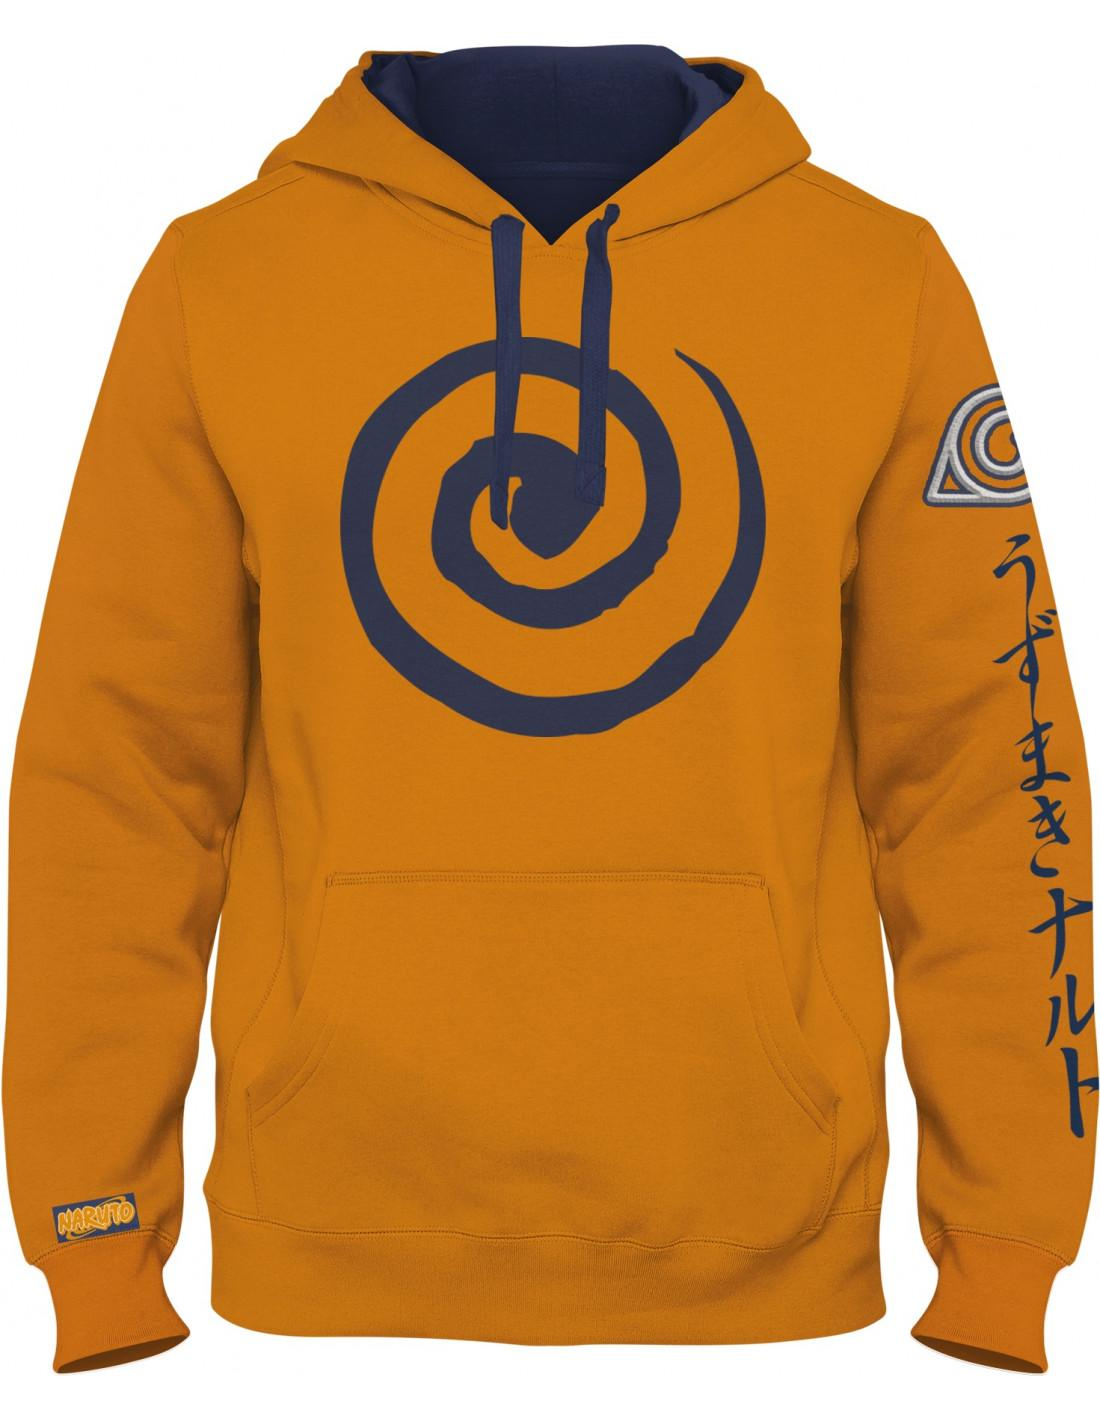 Sweat shirt naruto naruto logo